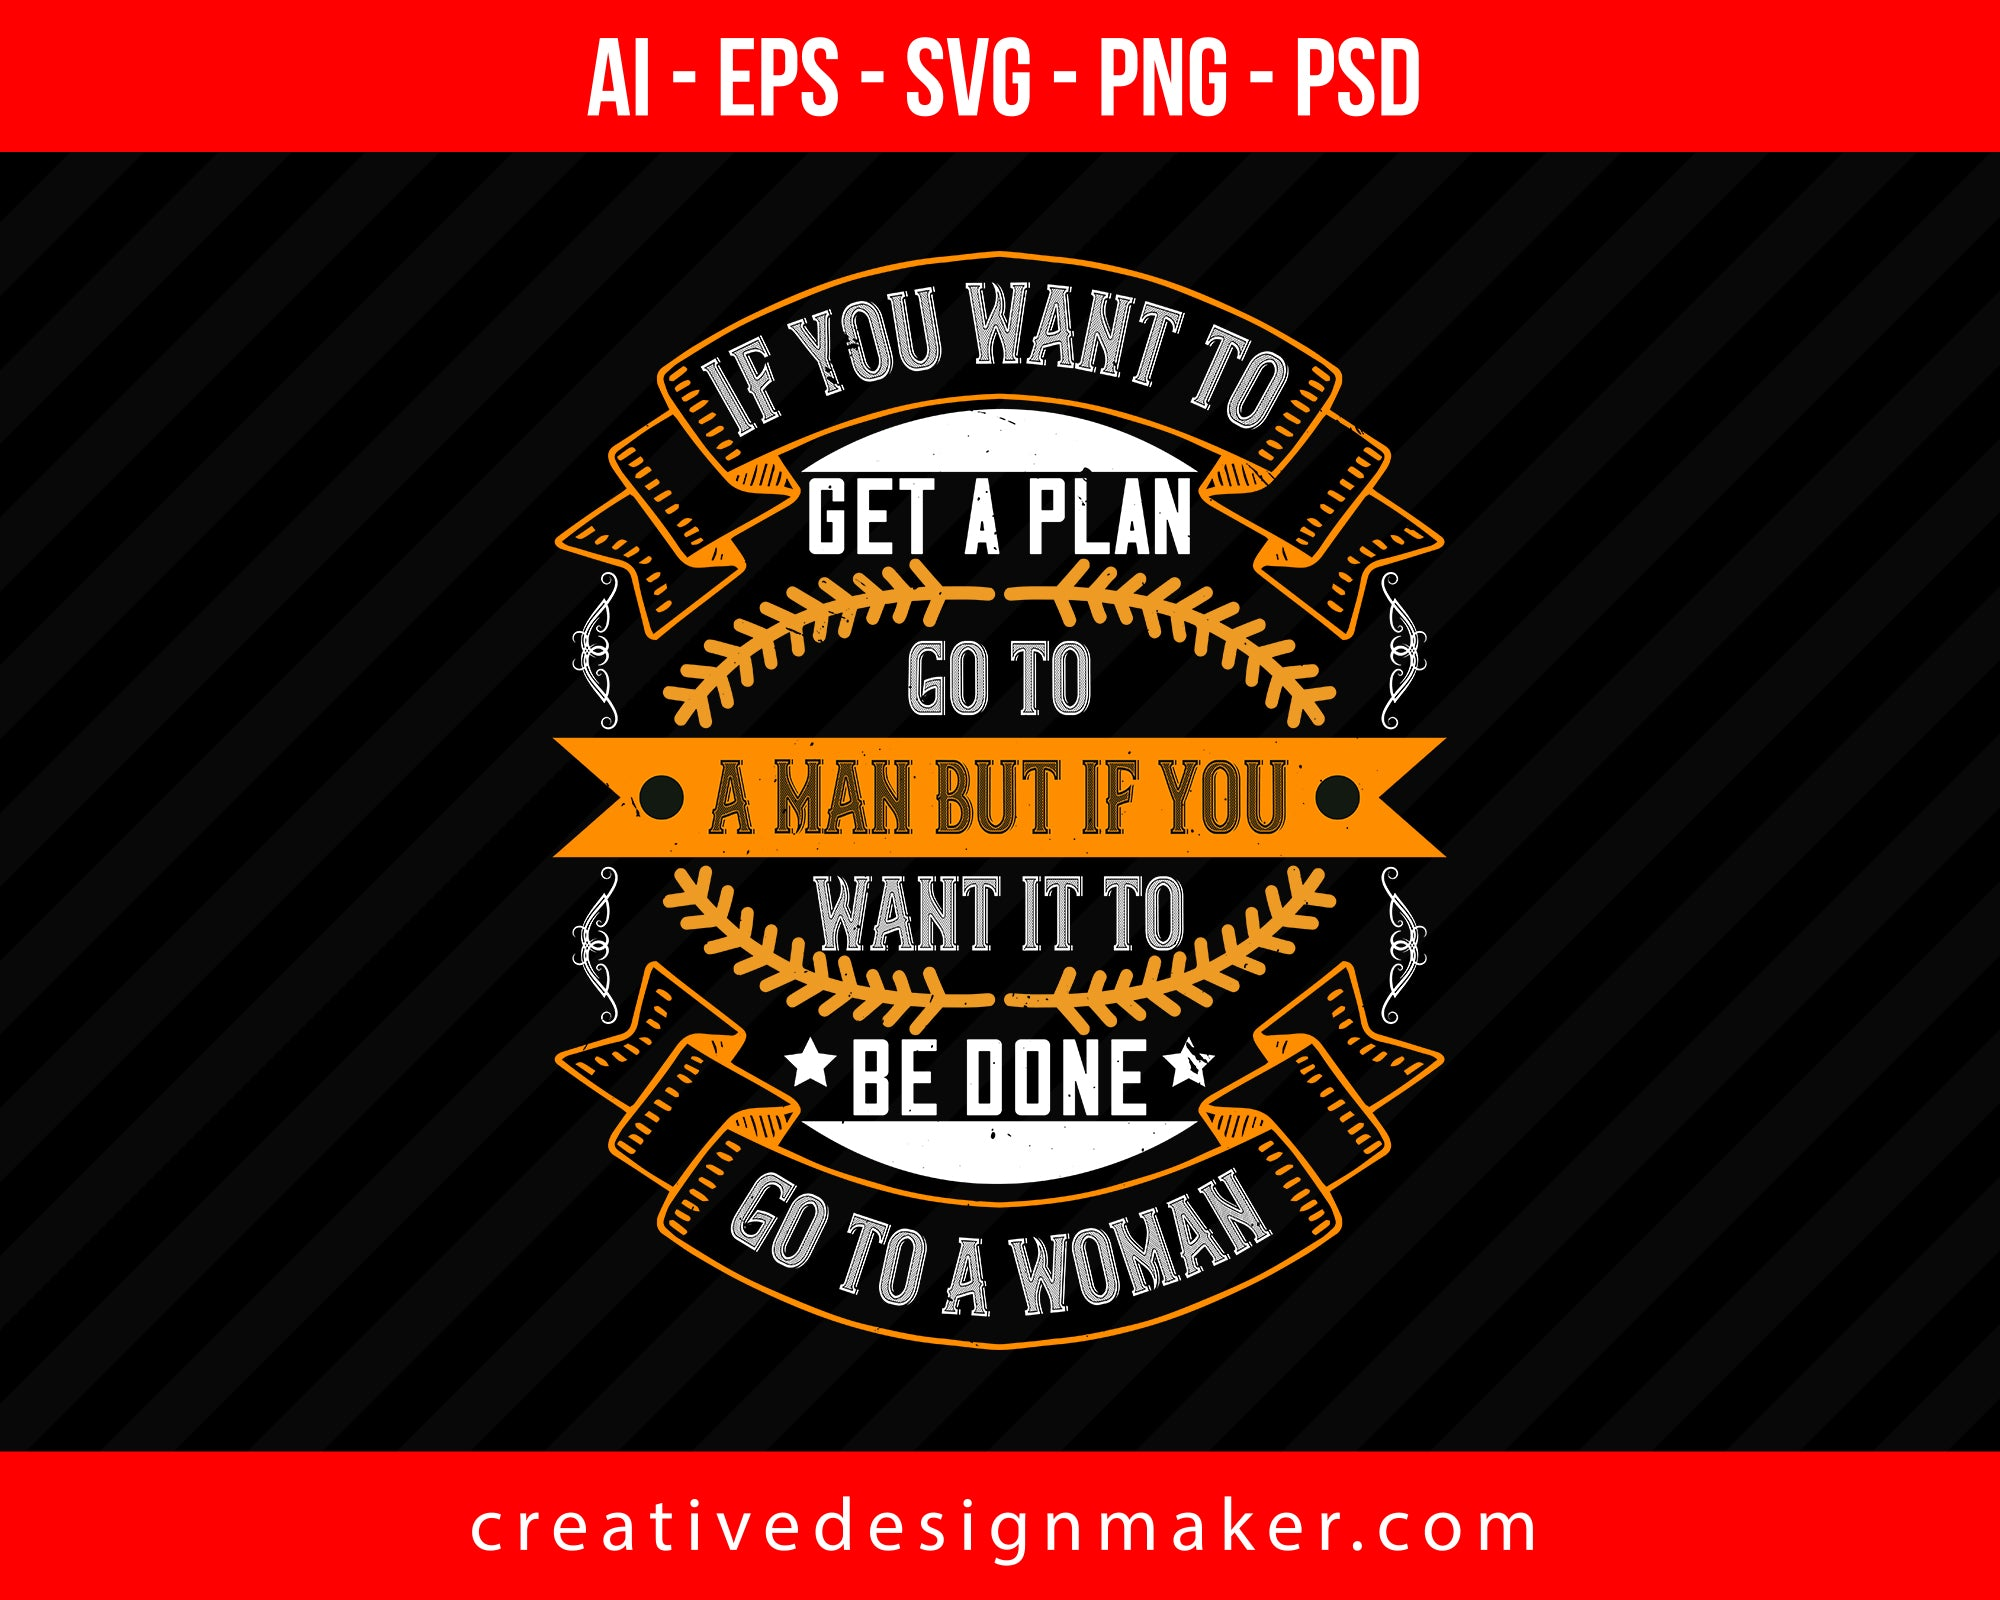 If you want to get a plan, go to a man but if you want it to be done, go to a Women's Day Print Ready Editable T-Shirt SVG Design!